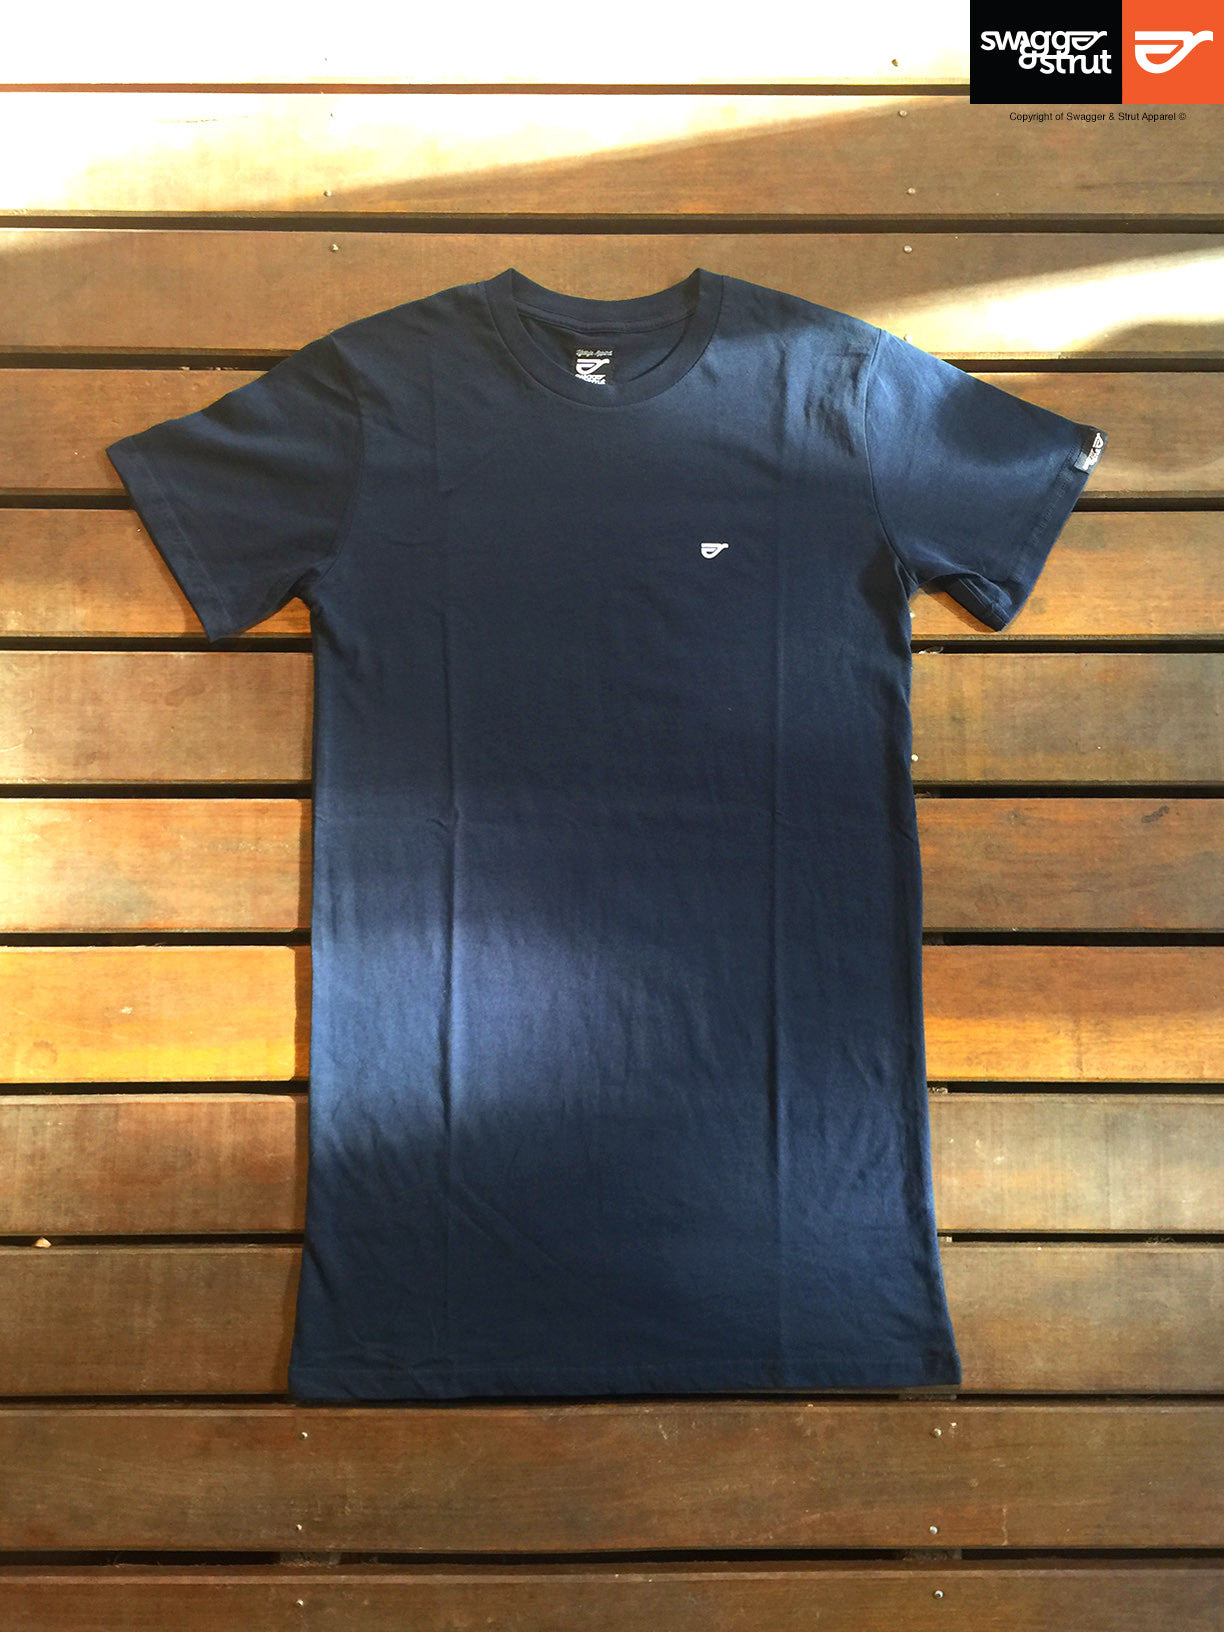 Navy - Male Tall Tee Regular Relaxed Fit